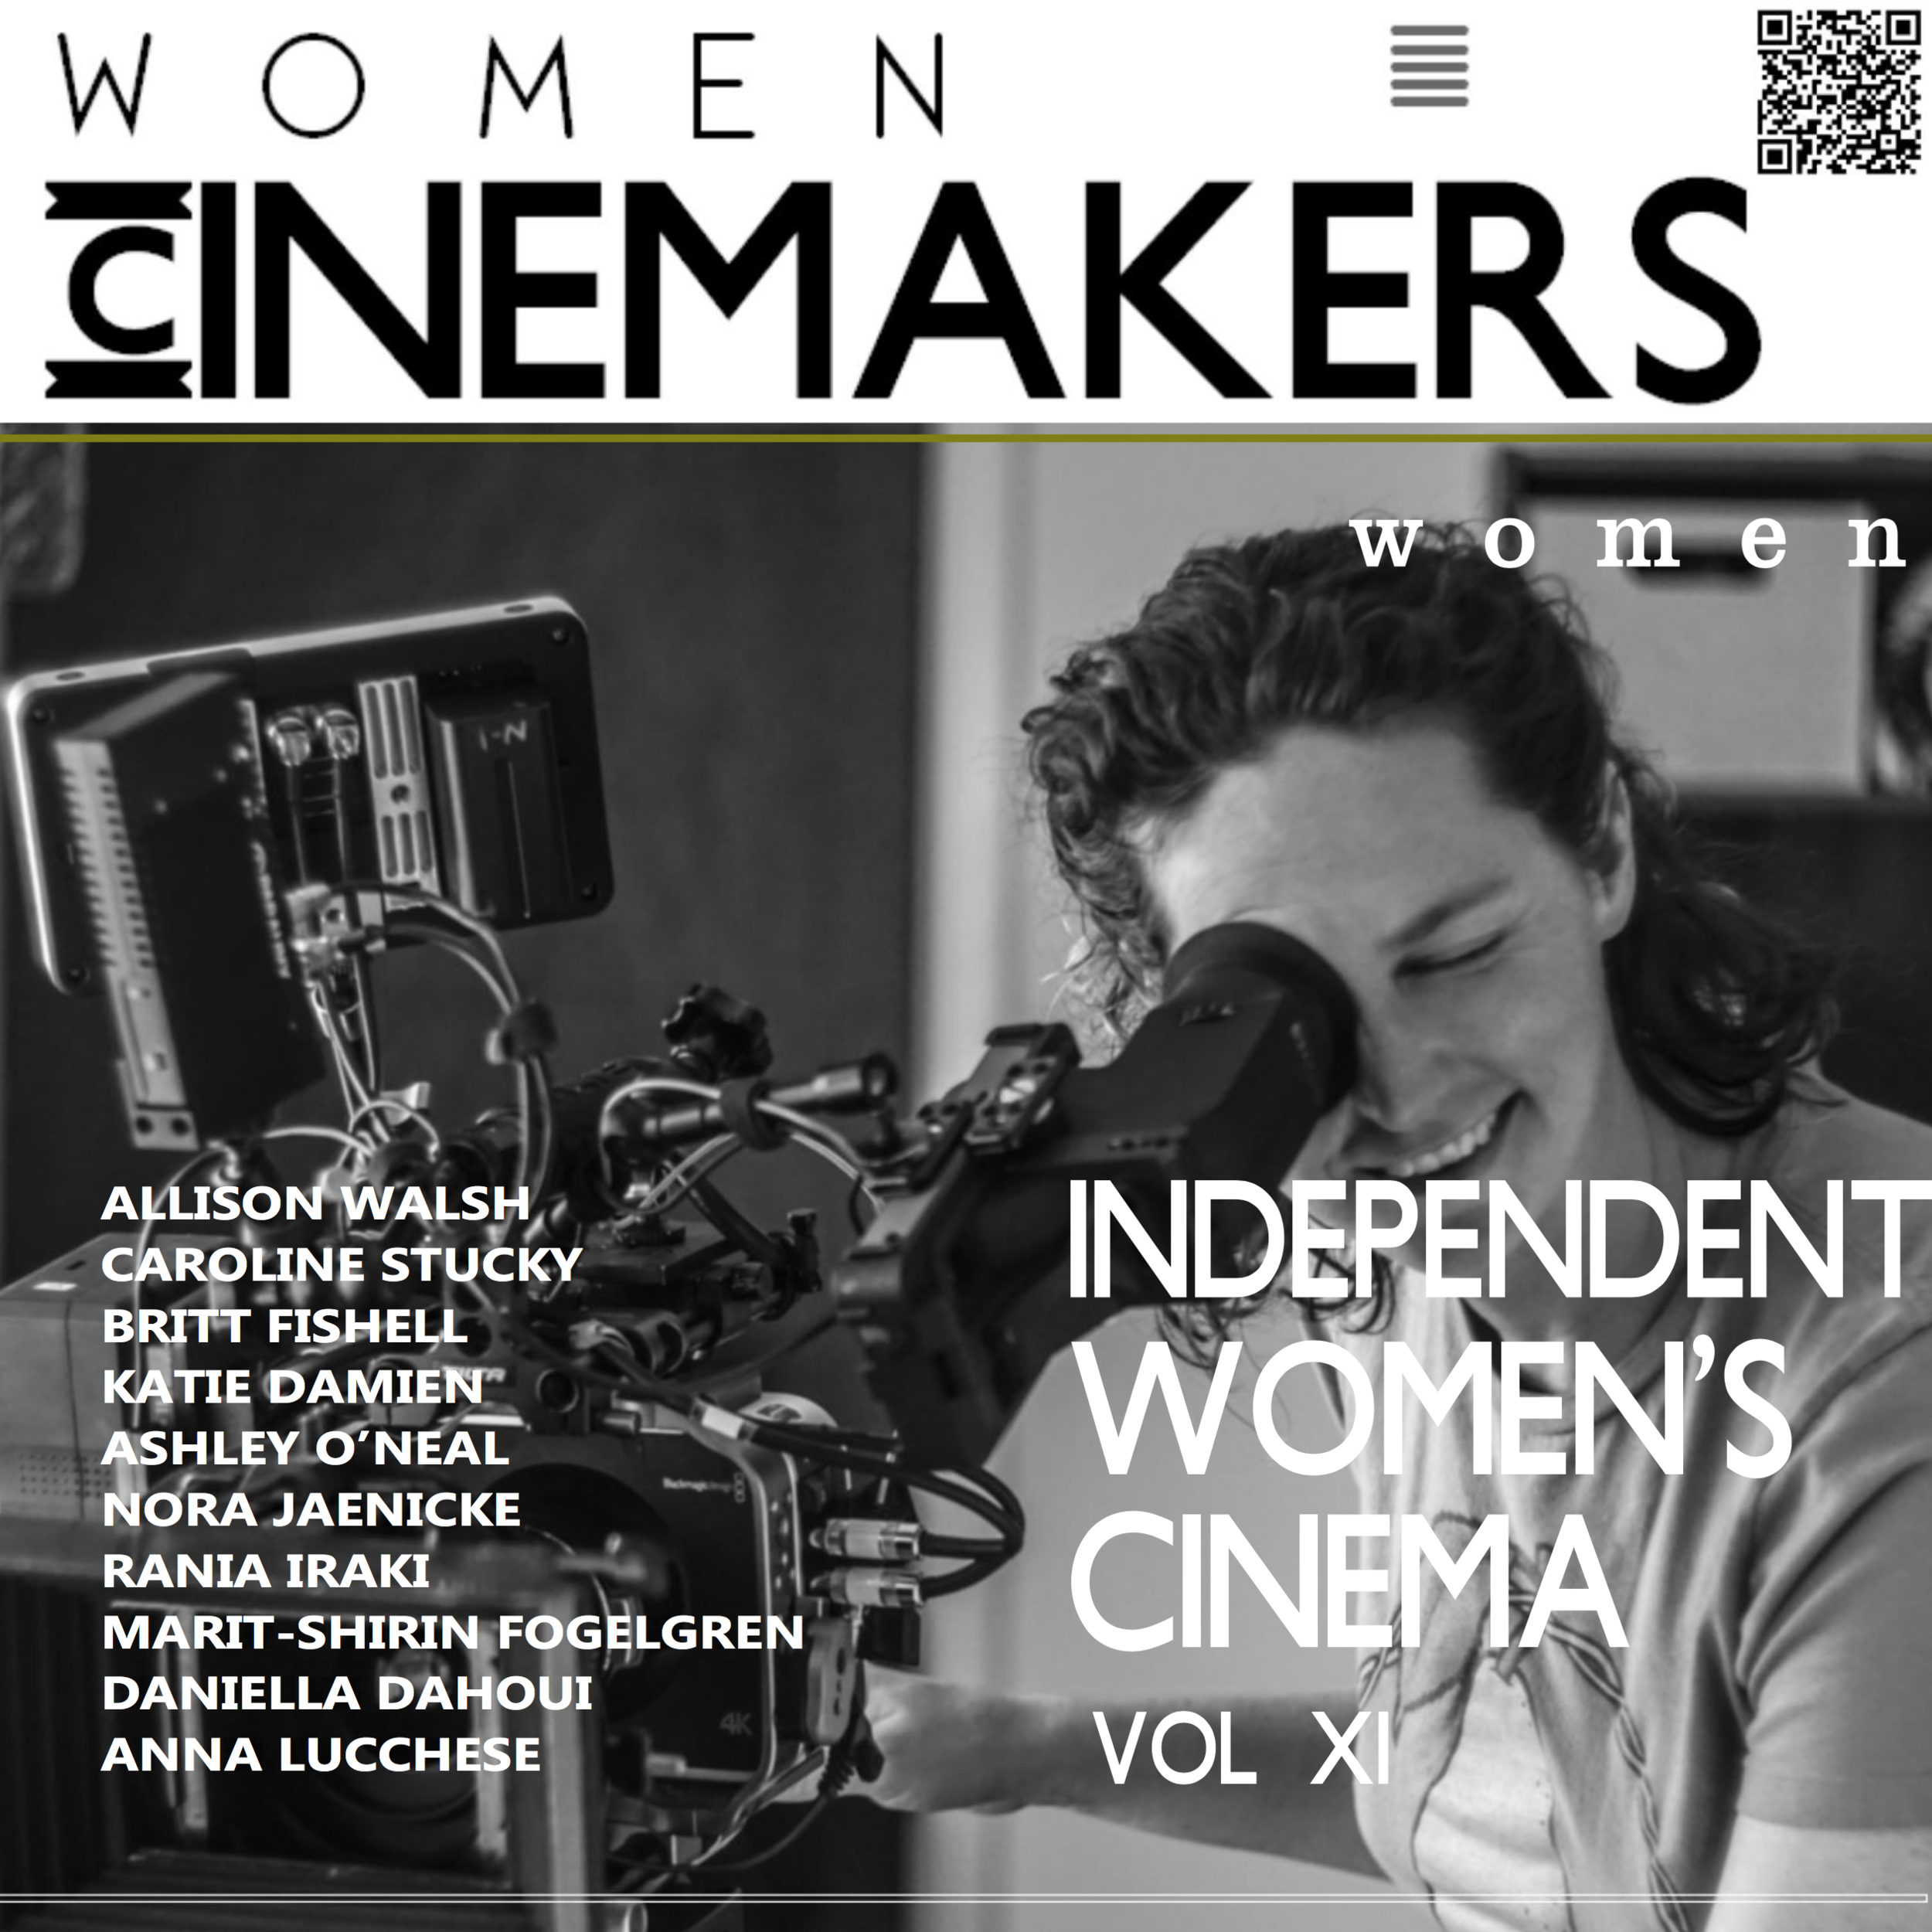 Women Cinemakers - Special Edition (24-page article) -